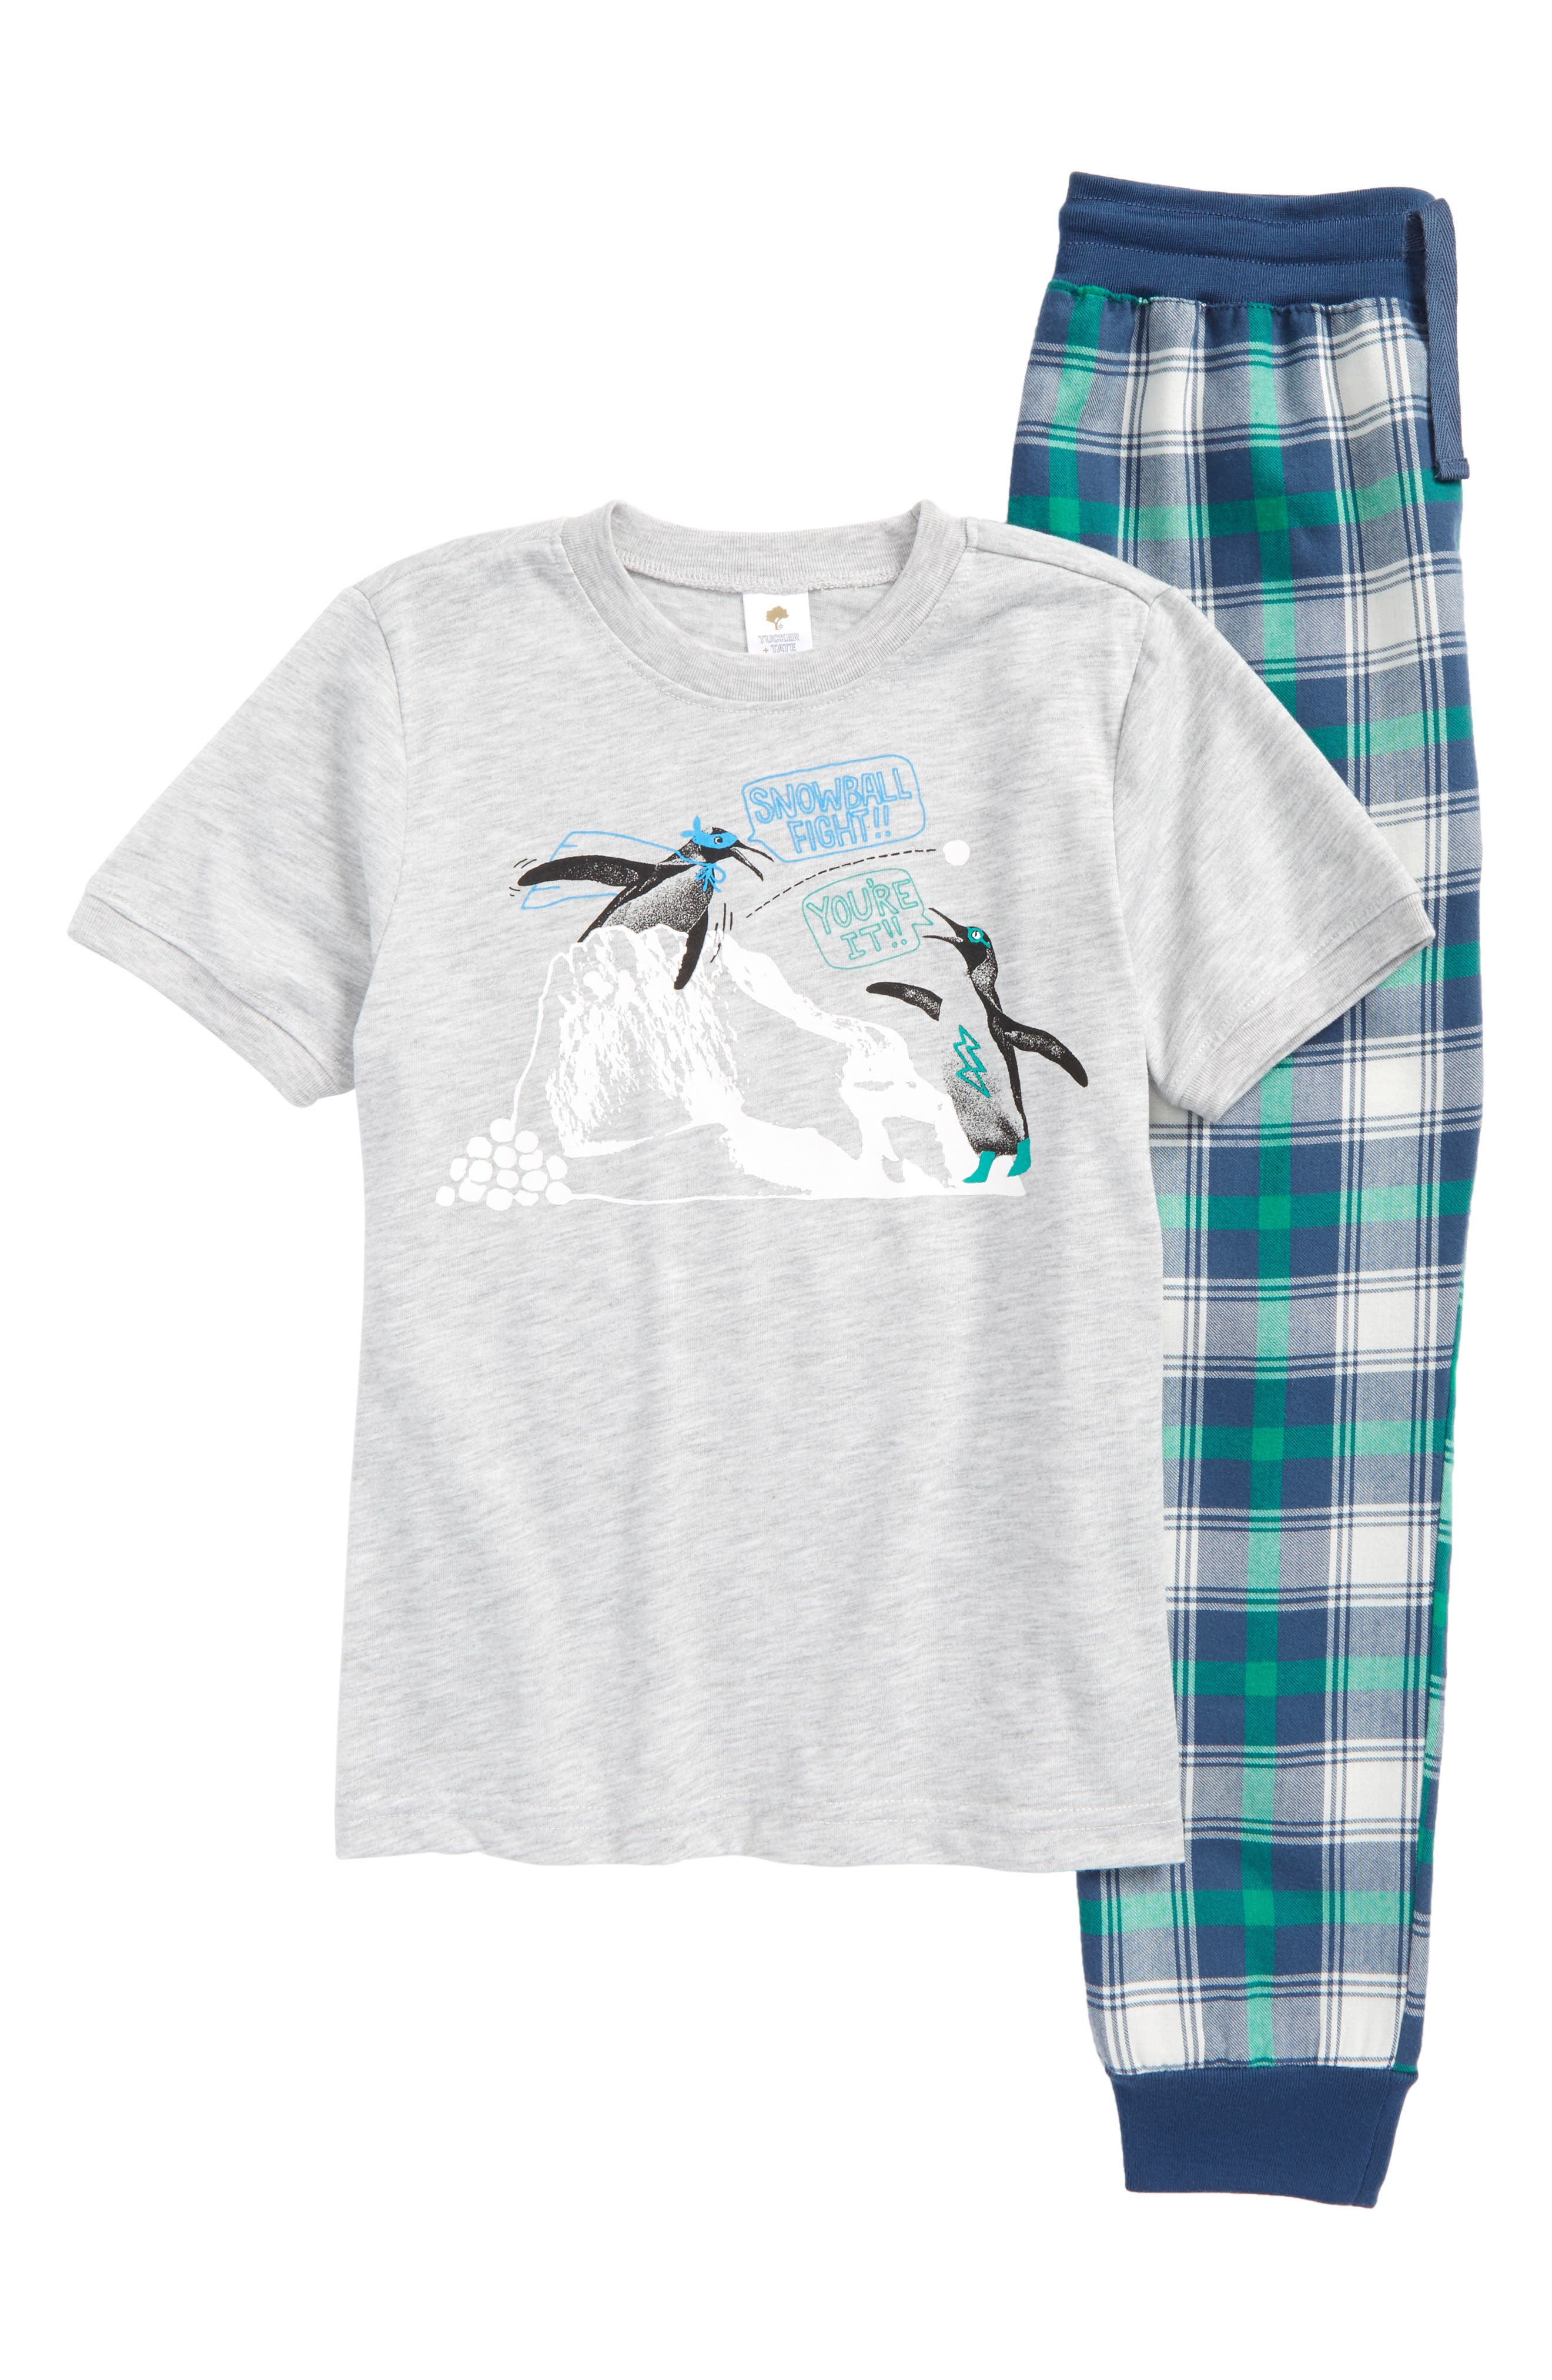 Main Image - Tucker + Tate Graphic Two-Piece Pajamas Set (Toddler Boys, Little Boys & Big Boys)